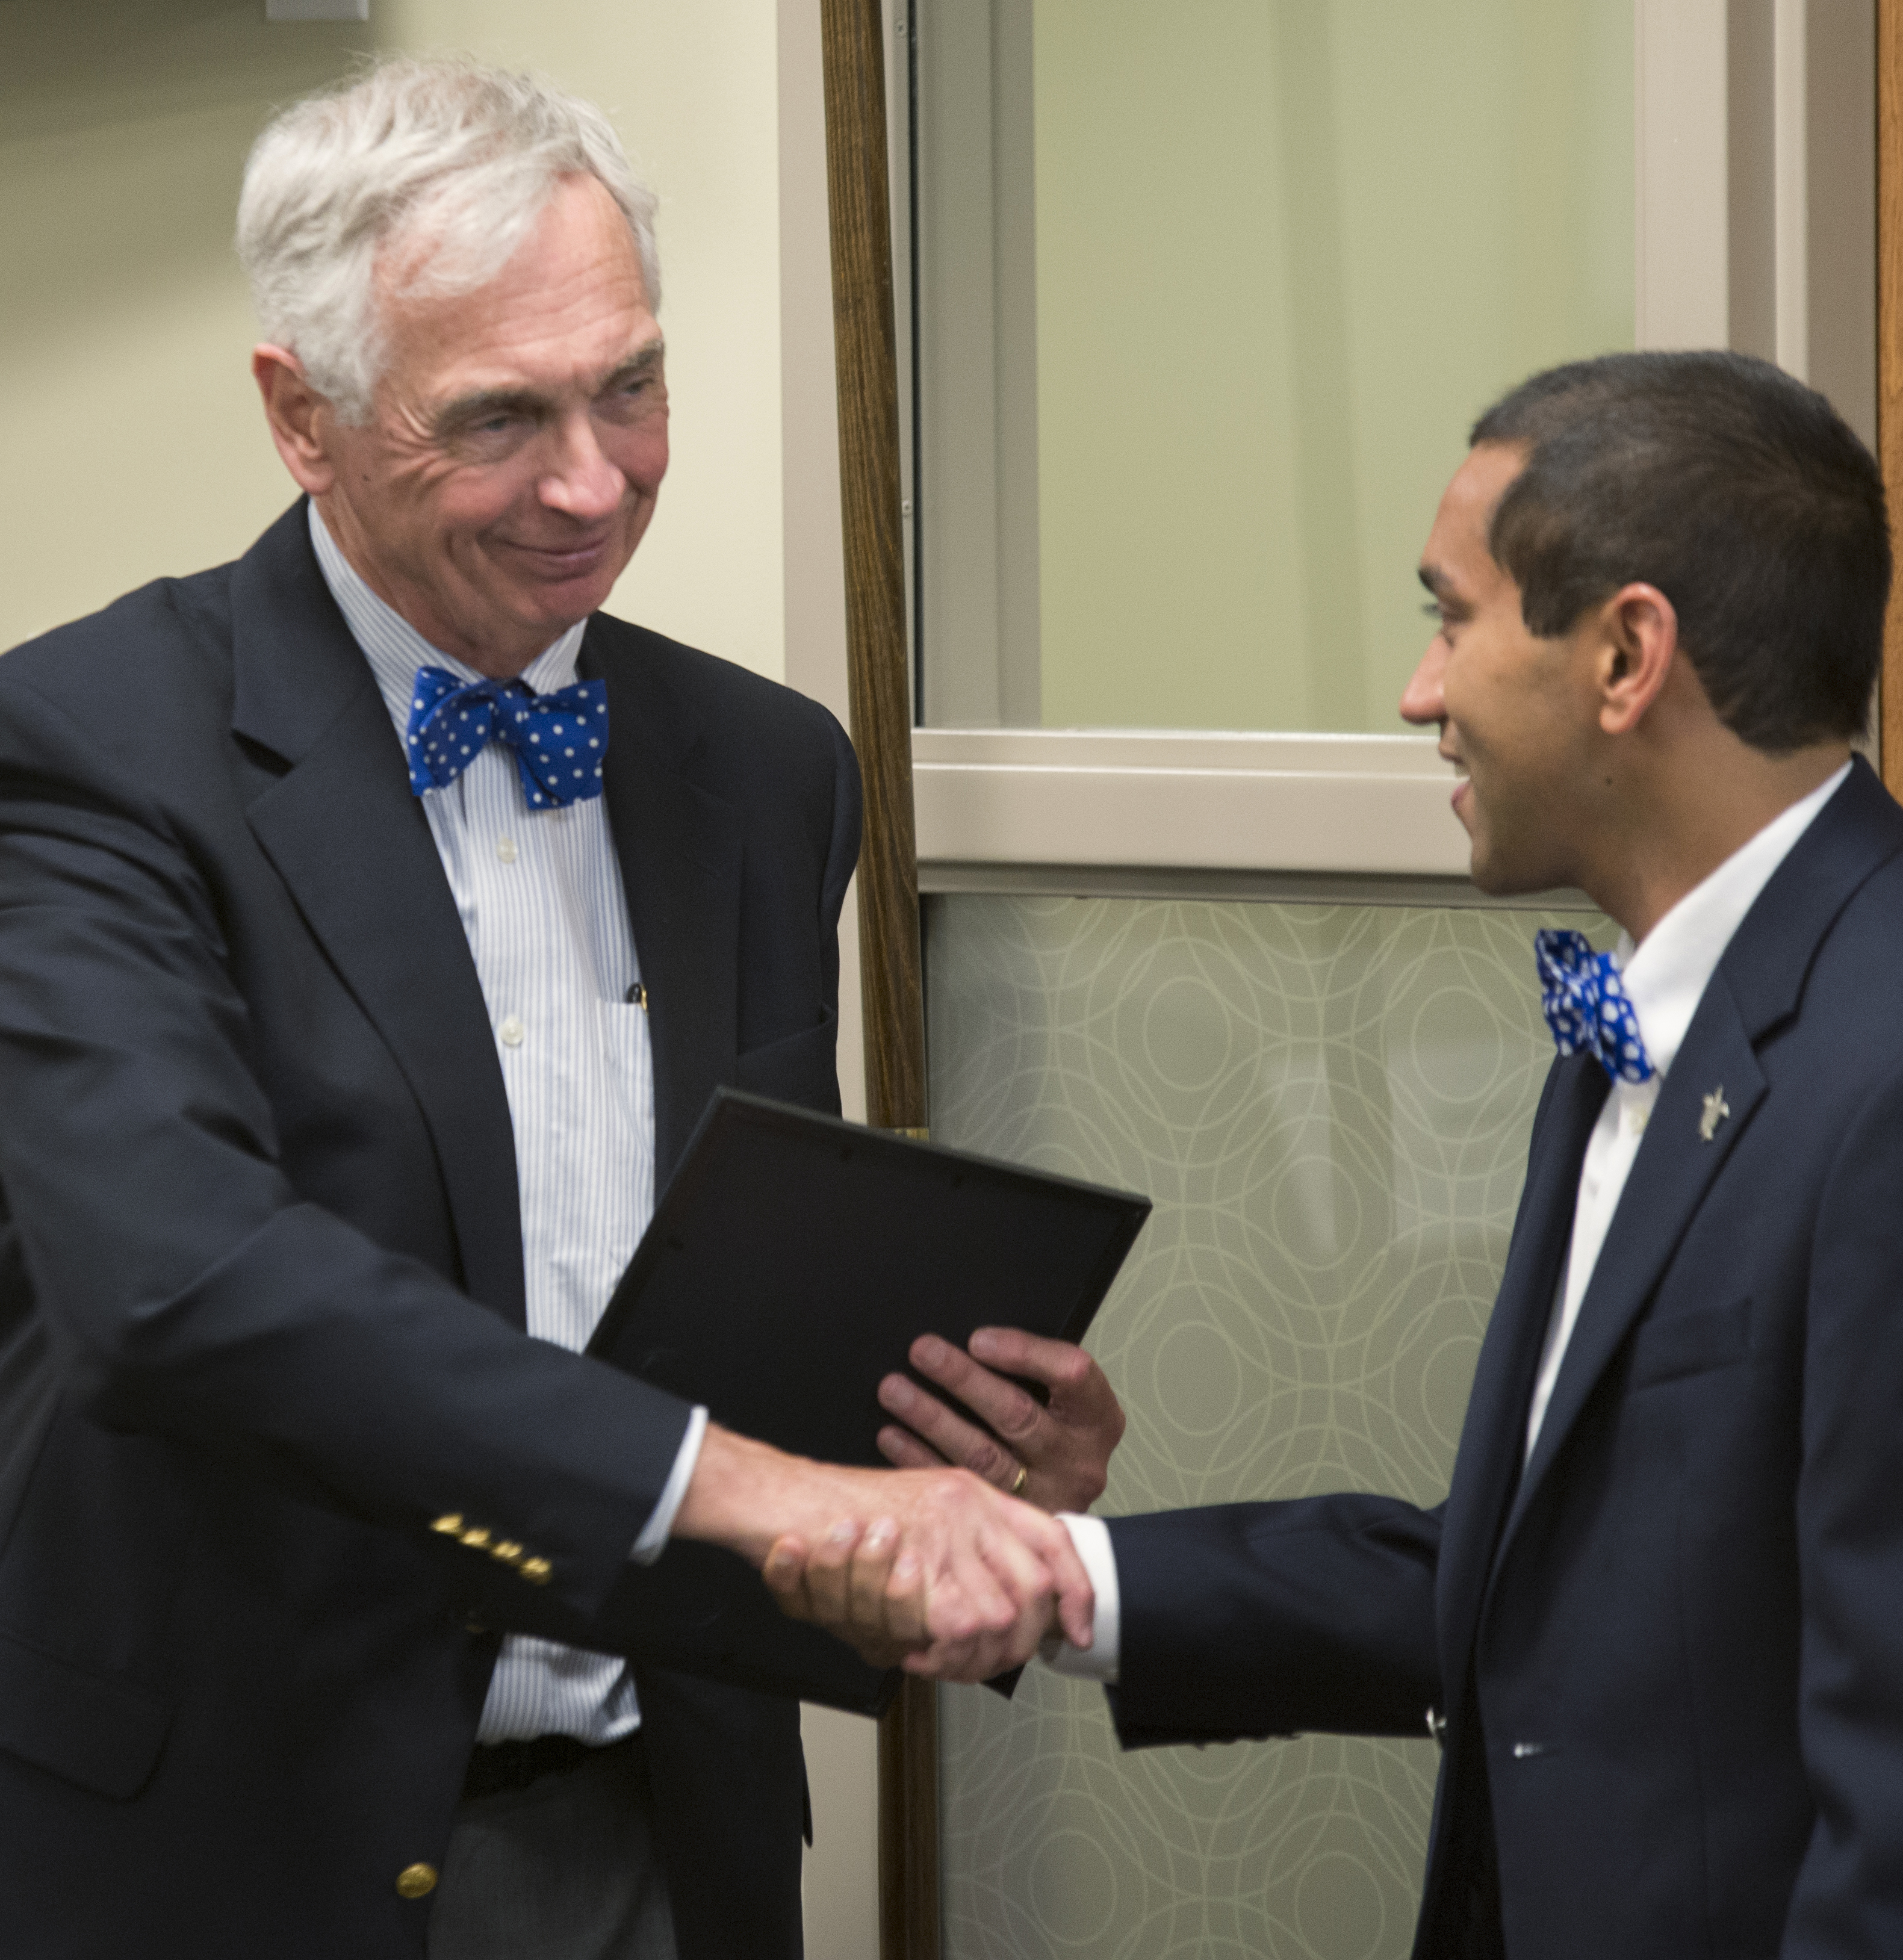 An honorable farewell: Interim President Bill Kauffman receiving his award from SGA on Wednesday. John Schuler / Photo Editor